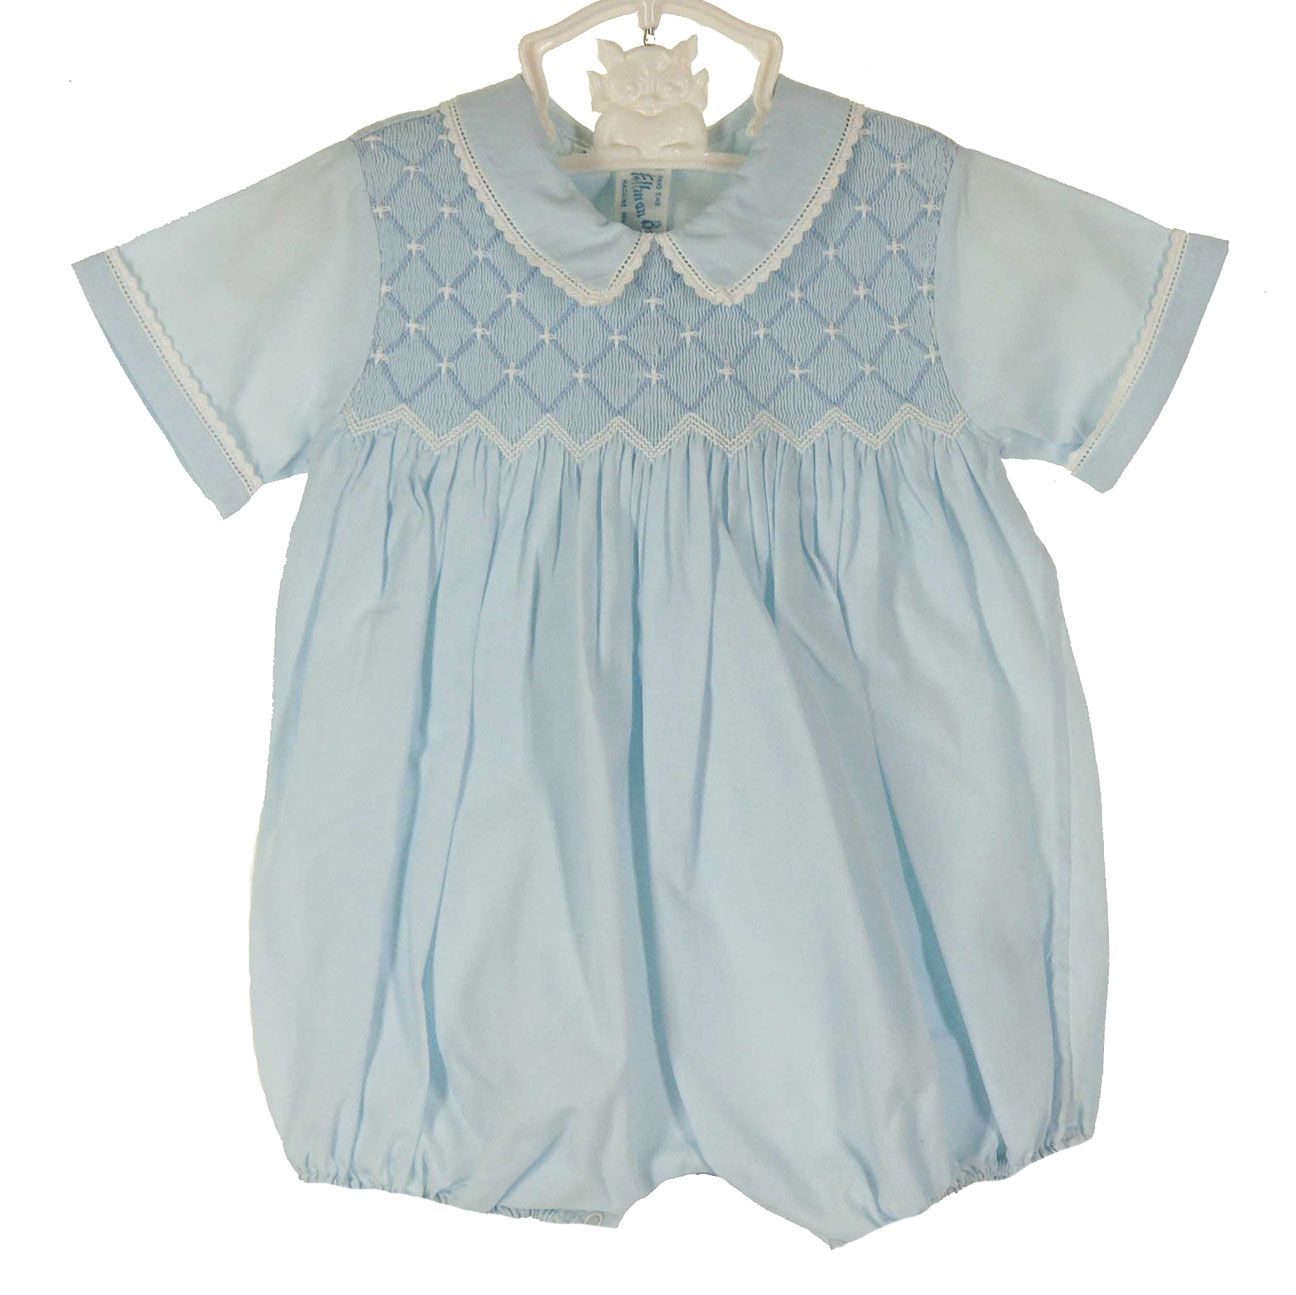 NEW Feltman Brothers Blue Smocked Romper with Back Ties $60.00 #FeltmanBrothersRomper